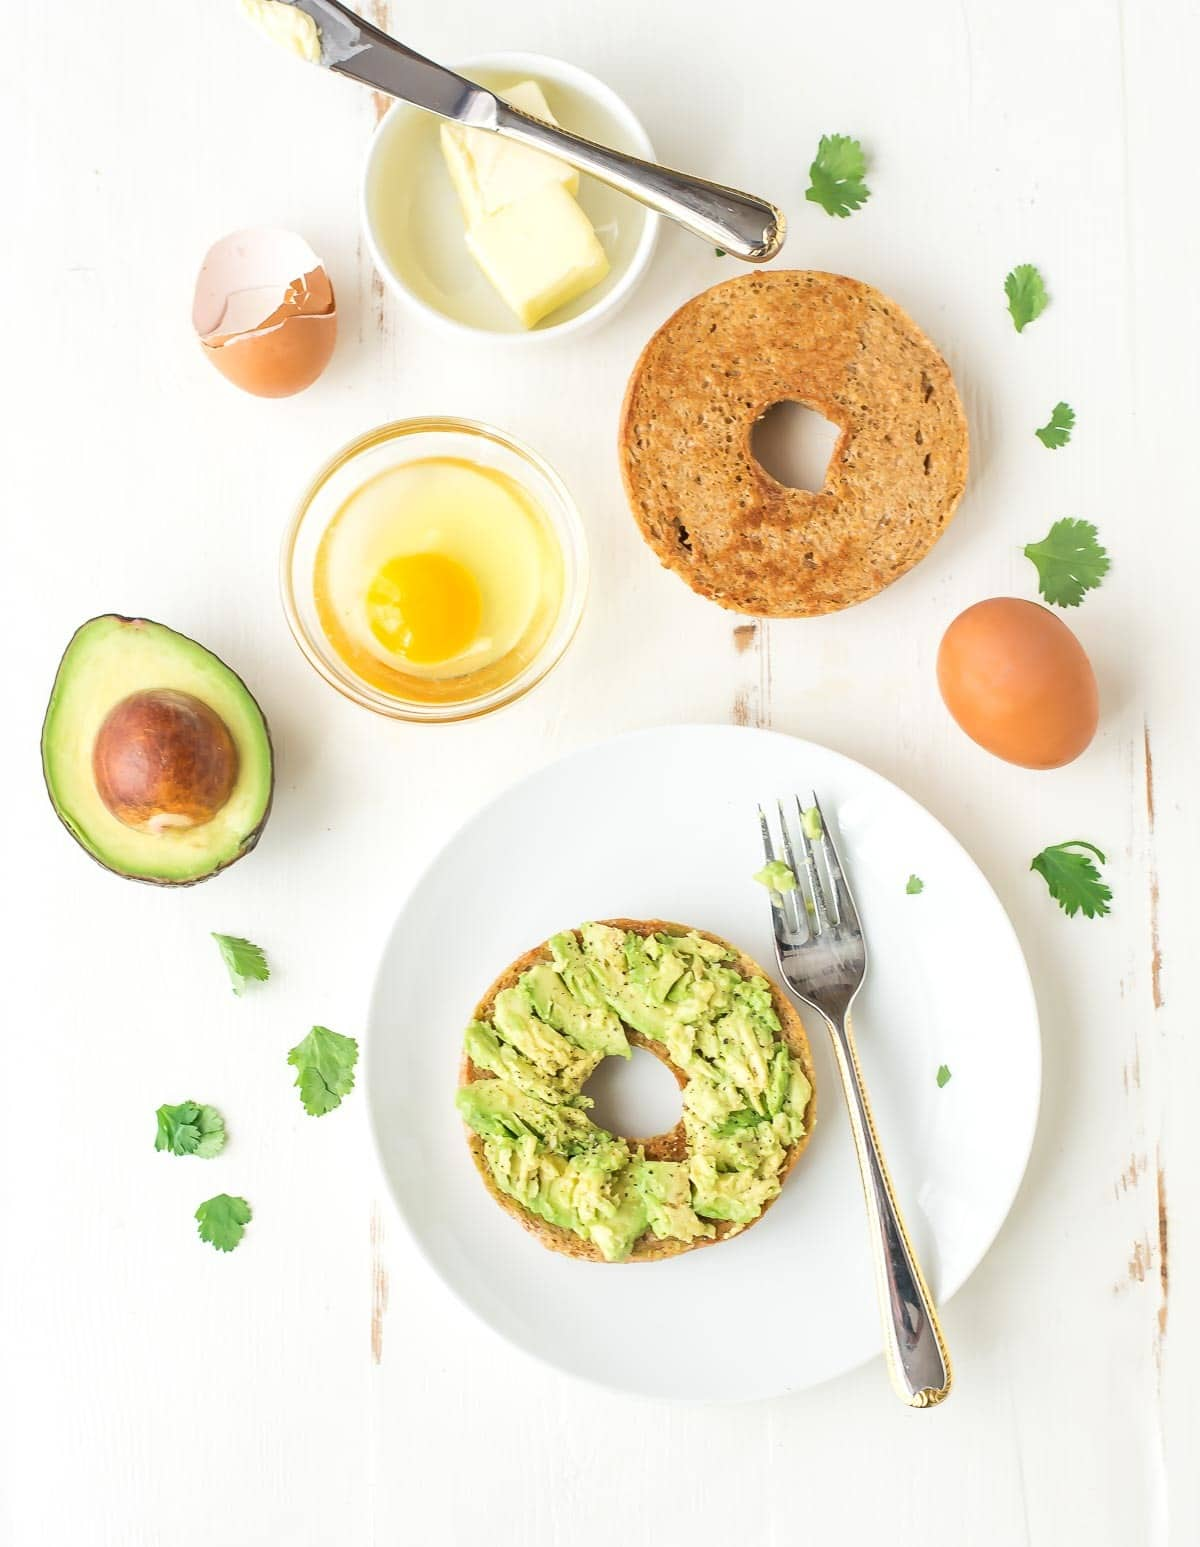 Egg in a Hole Recipe, made with a bagel and avocado - buttery toasted bagel with a fried egg in the center and smashed avocado on top. @wellplated